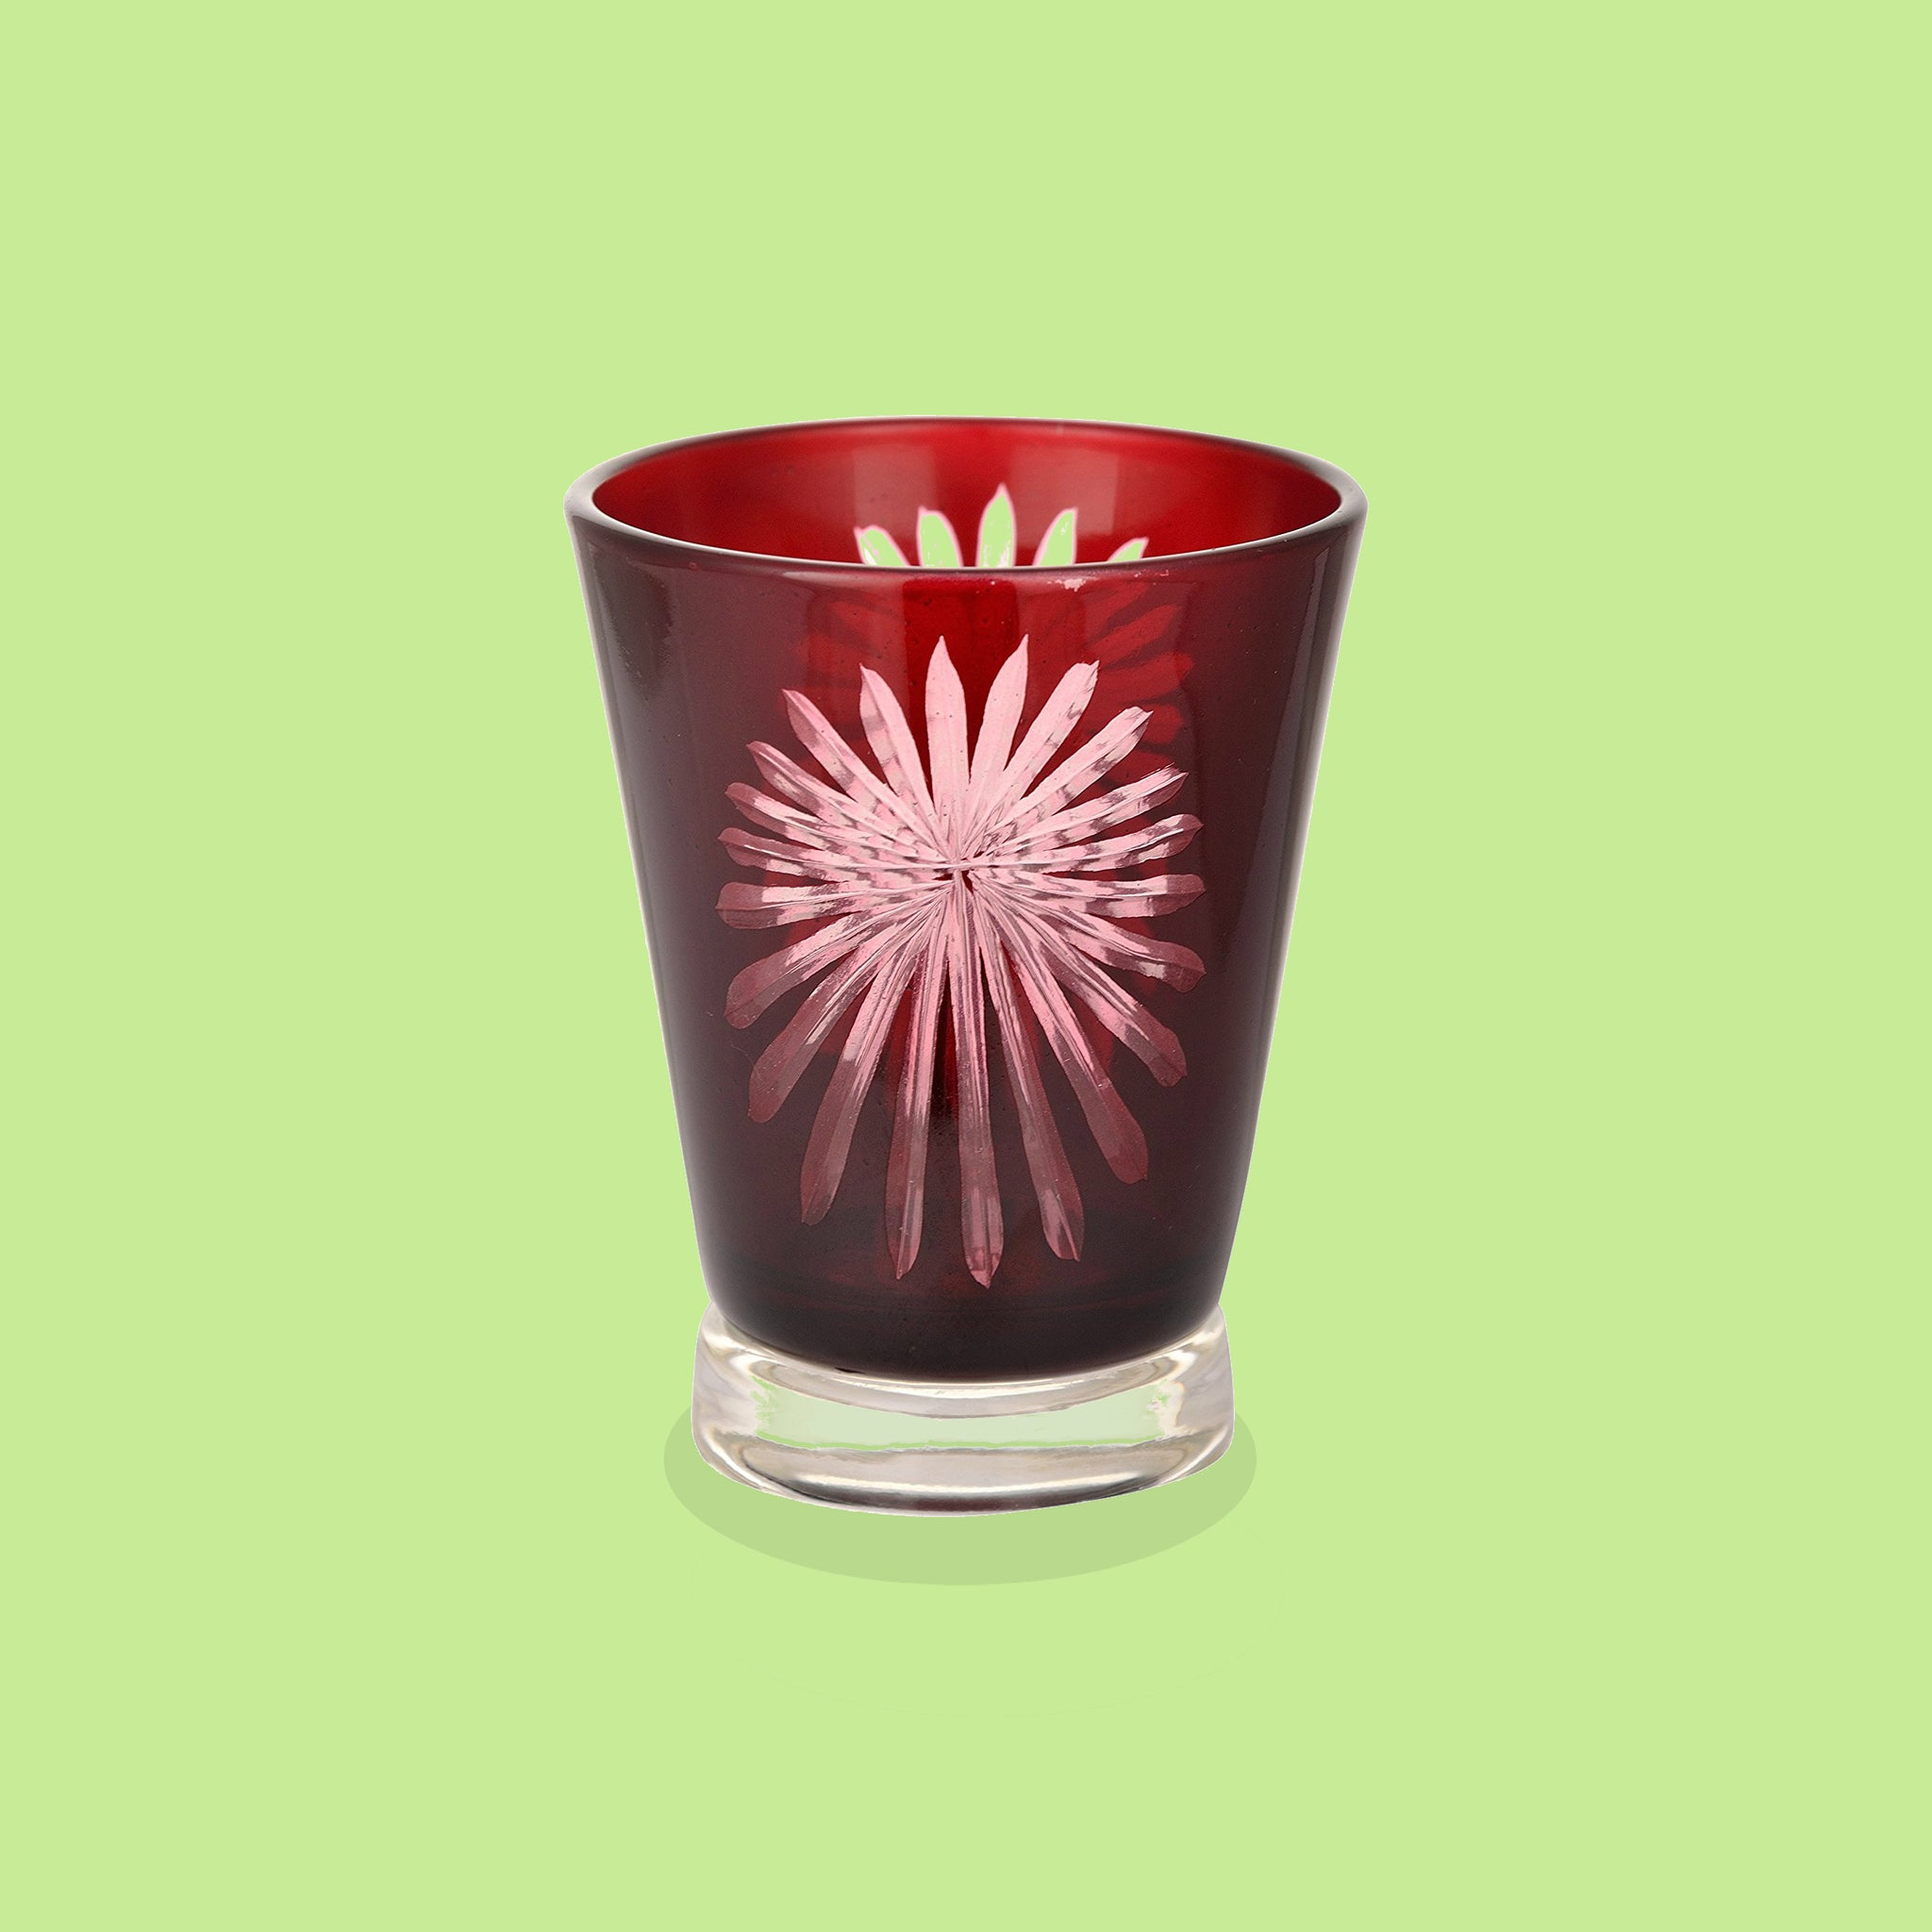 Red Fireworks Glass Tealight Candle Holder - Clearance